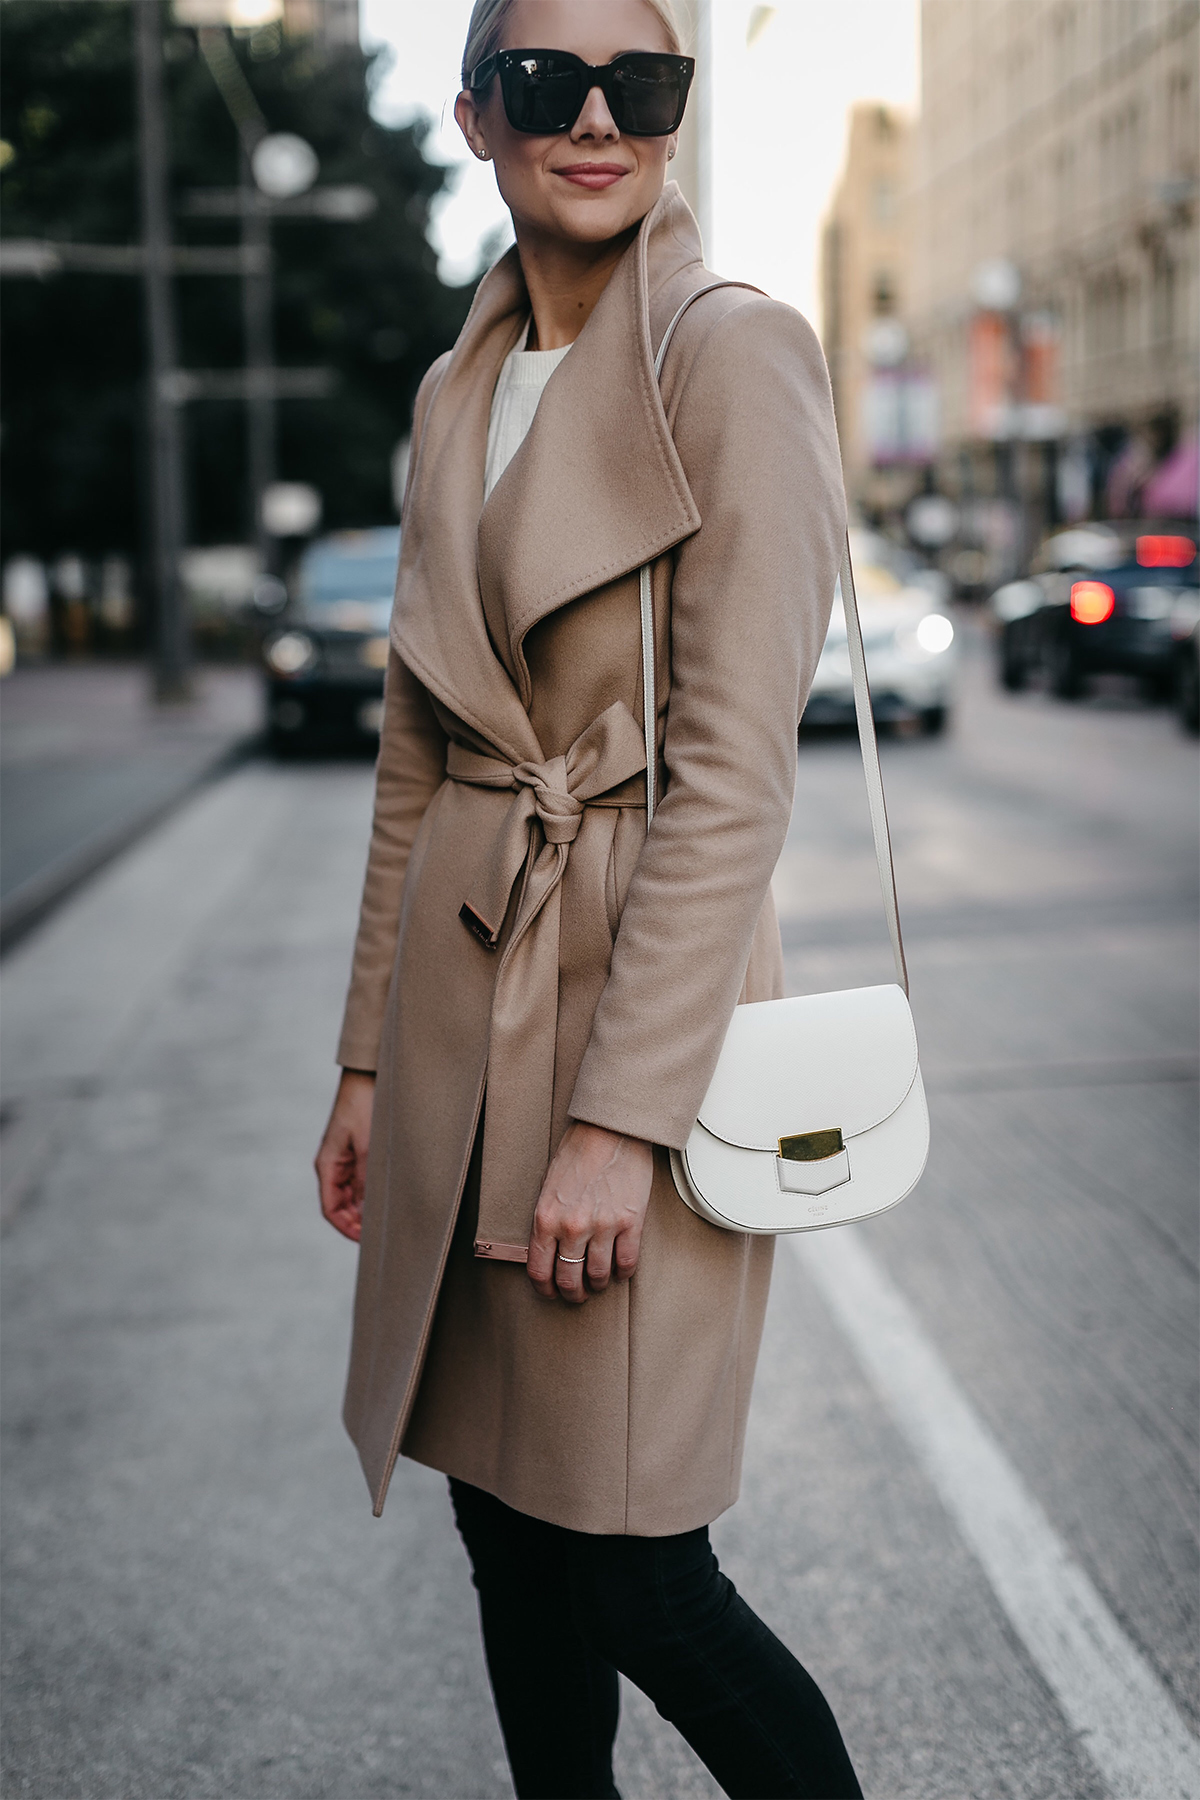 Blonde Woman Wearing Tan Wrap Coat Celine White Trotteur Handbag Black Skinny Jeans Fashion Jackson Dallas Blogger Fashion Blogger Street Style